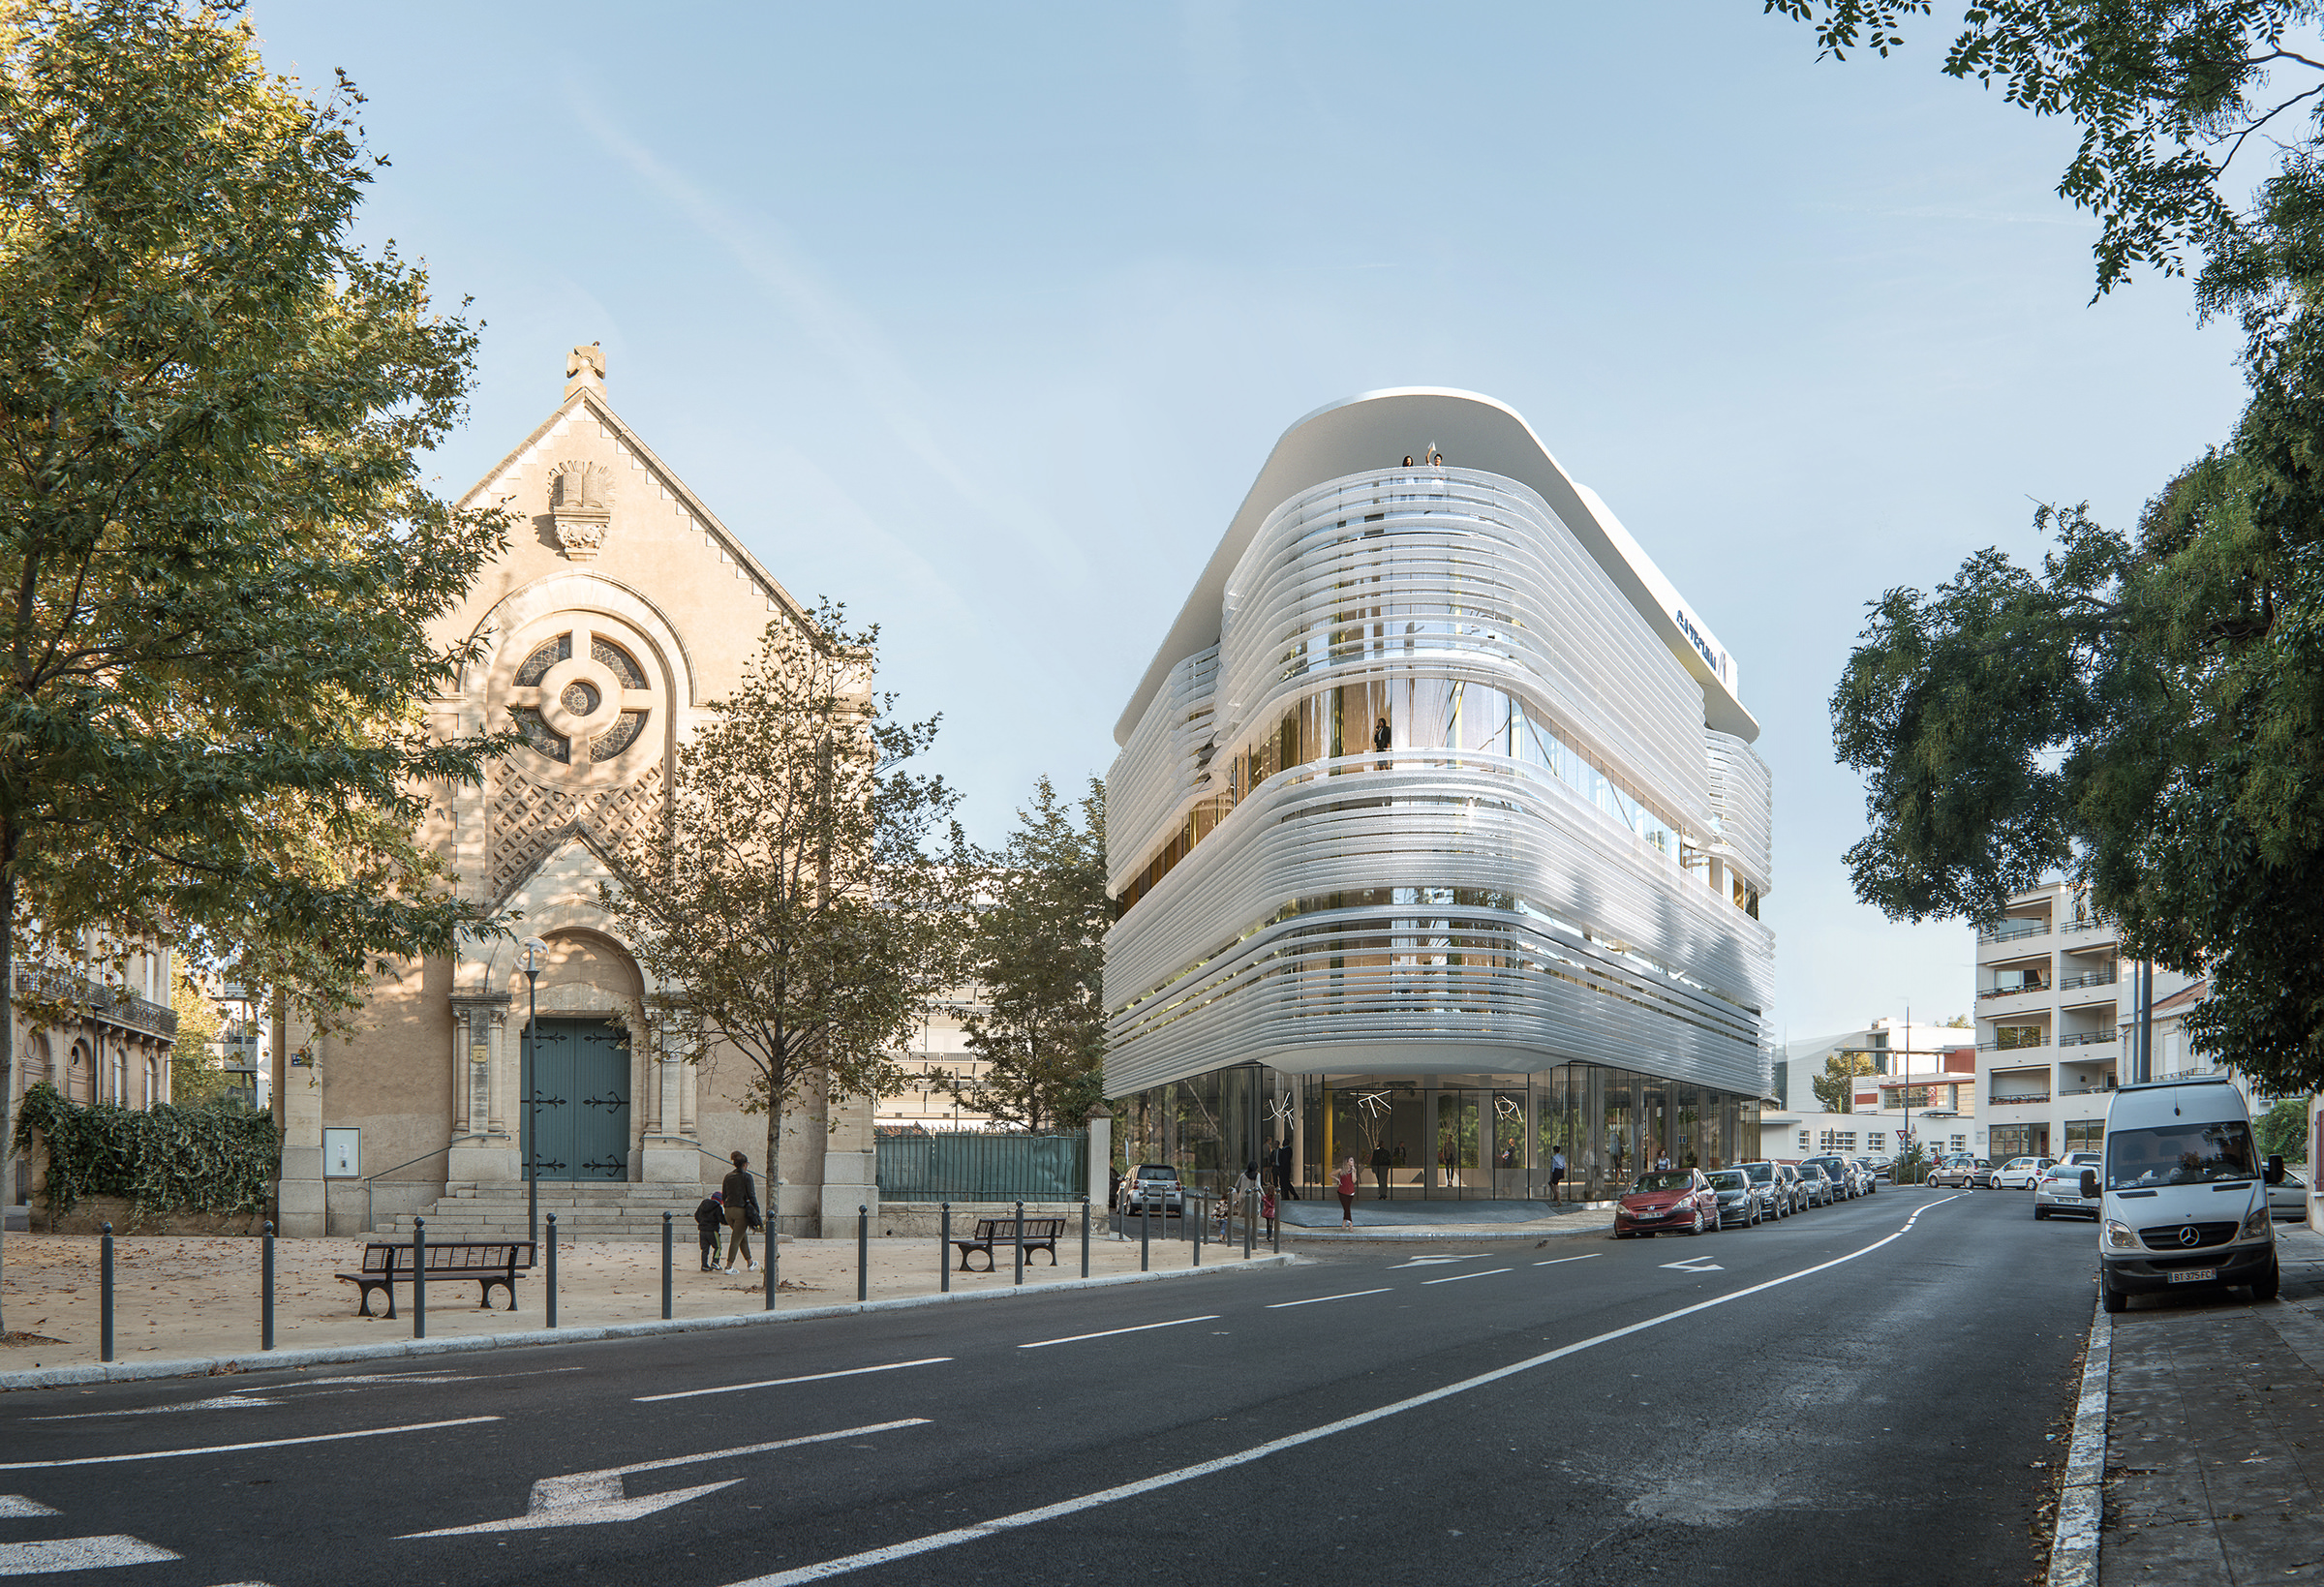 Daytime photo-insertion of 3D modeled business center into the existing surrounding of Beziers town, France